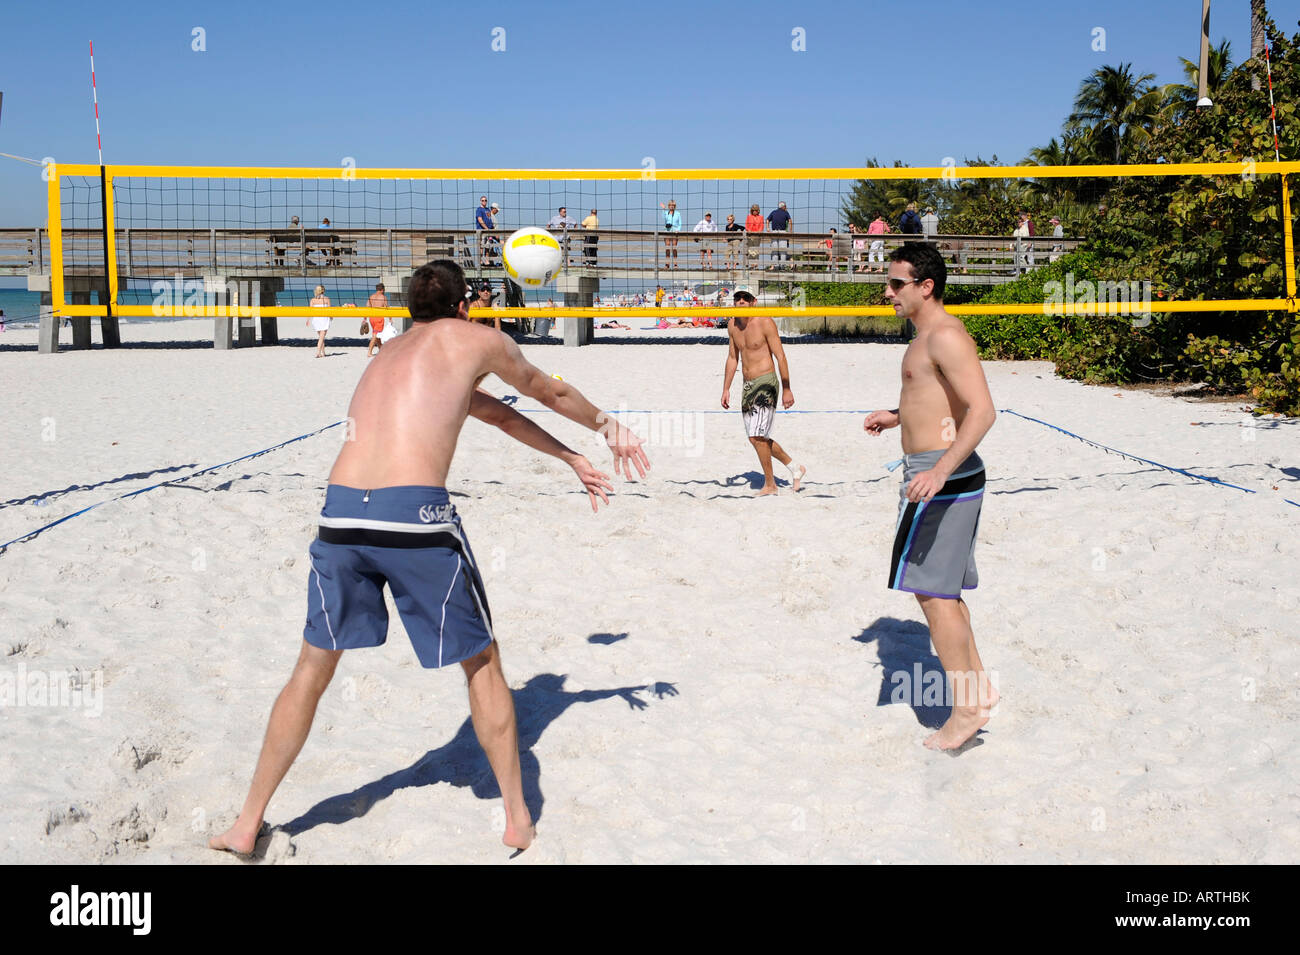 Beach 2 on 2 volleyball played at The Pier Beach Naples Florida - Stock Image